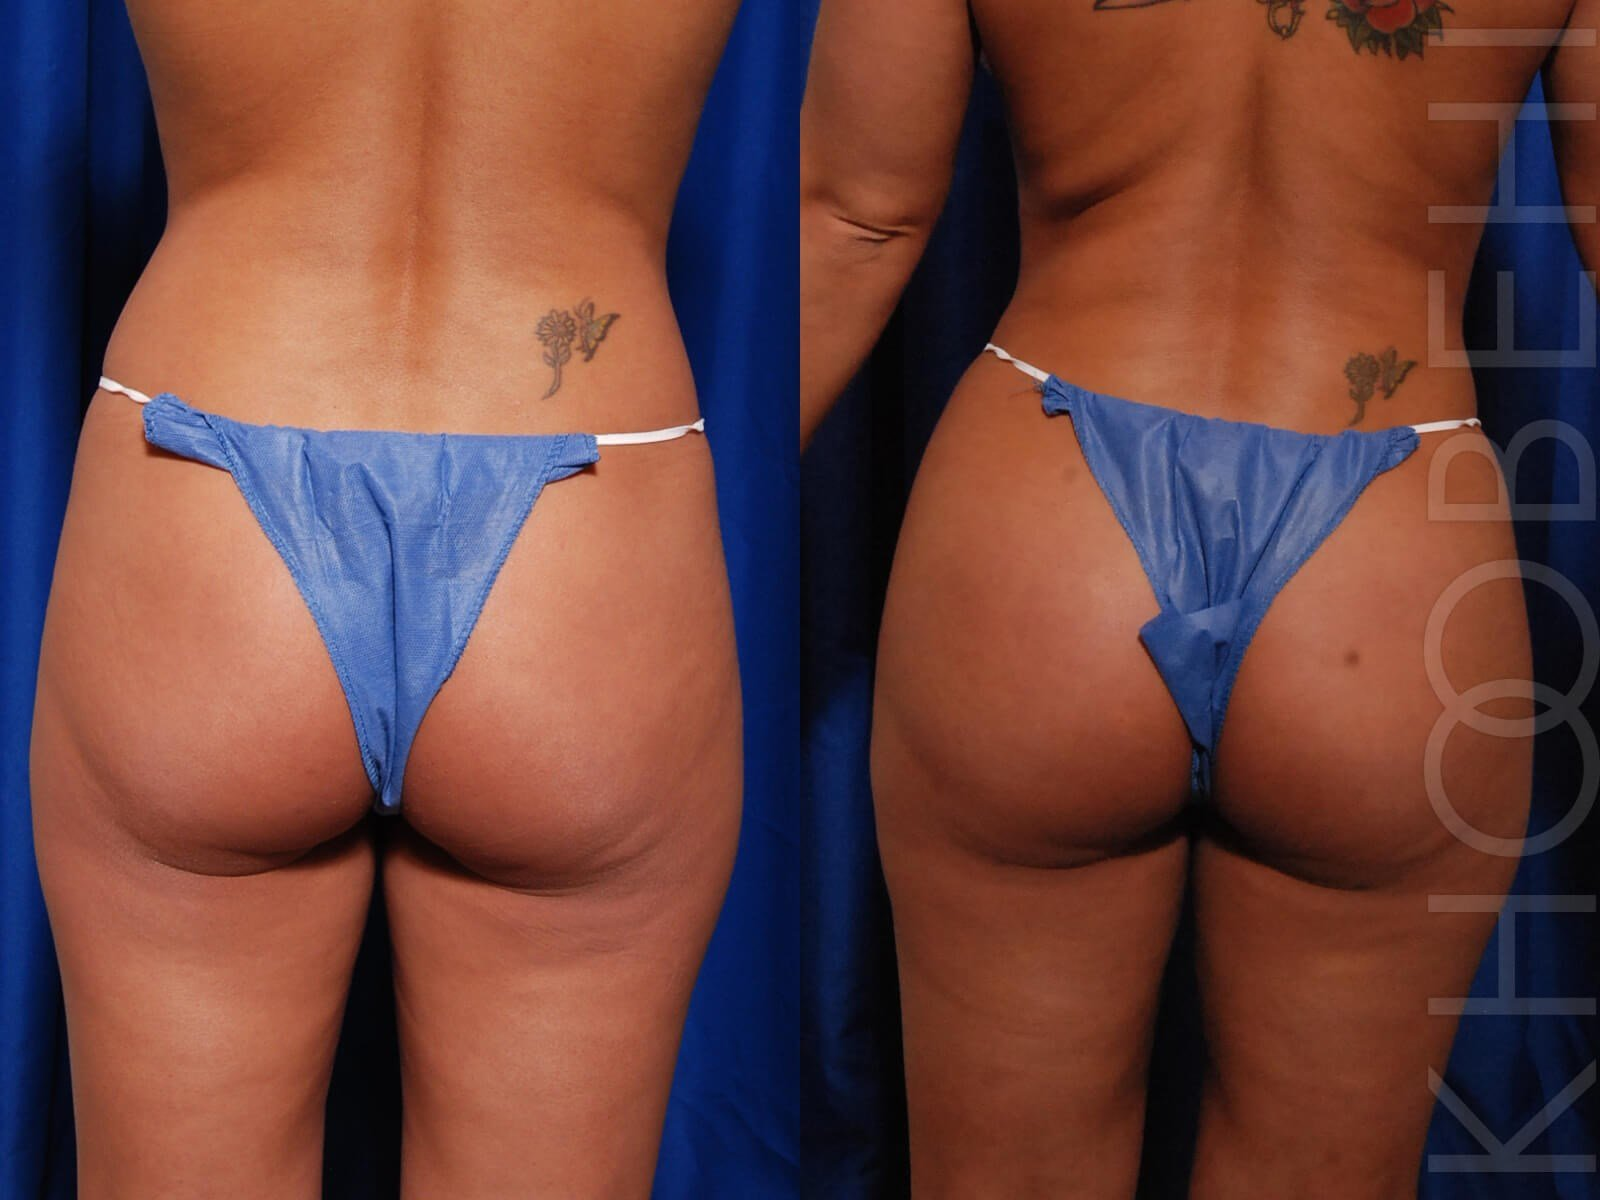 Fat Transfer and Liposuction Before/After